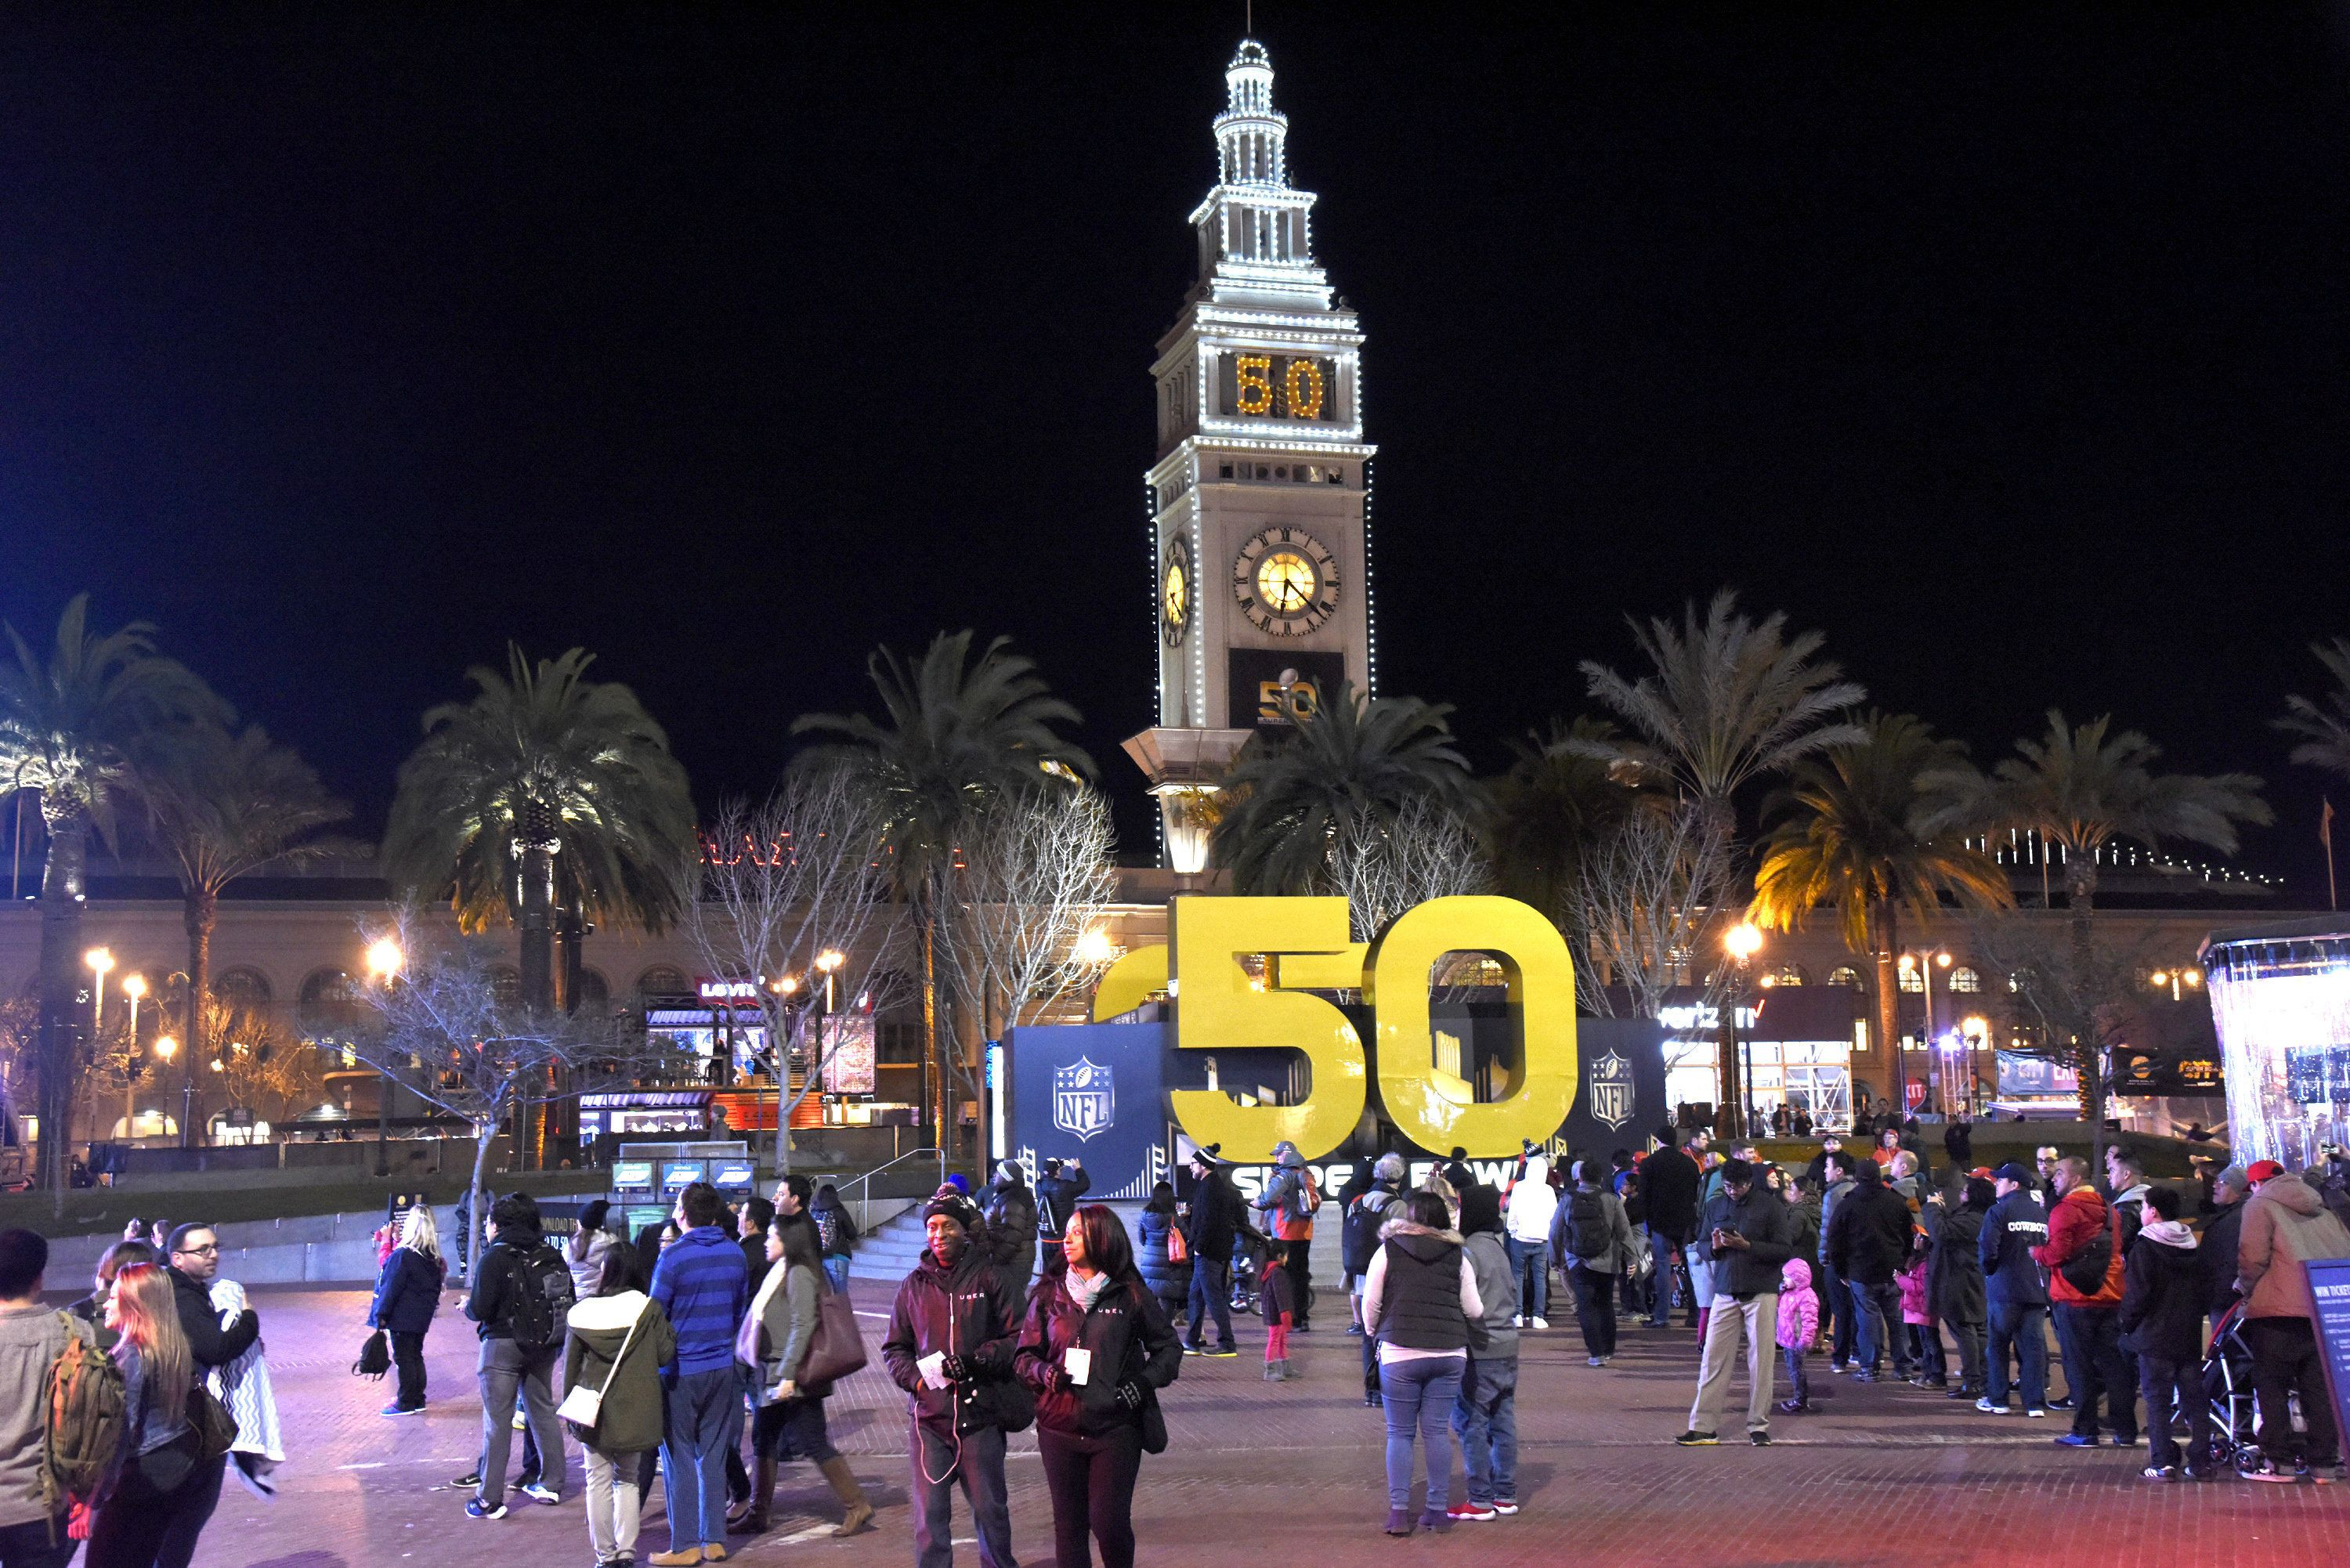 Many homeless people typically occupy Justin Herman Plaza, now the center of SF's Super Bowl festivities.